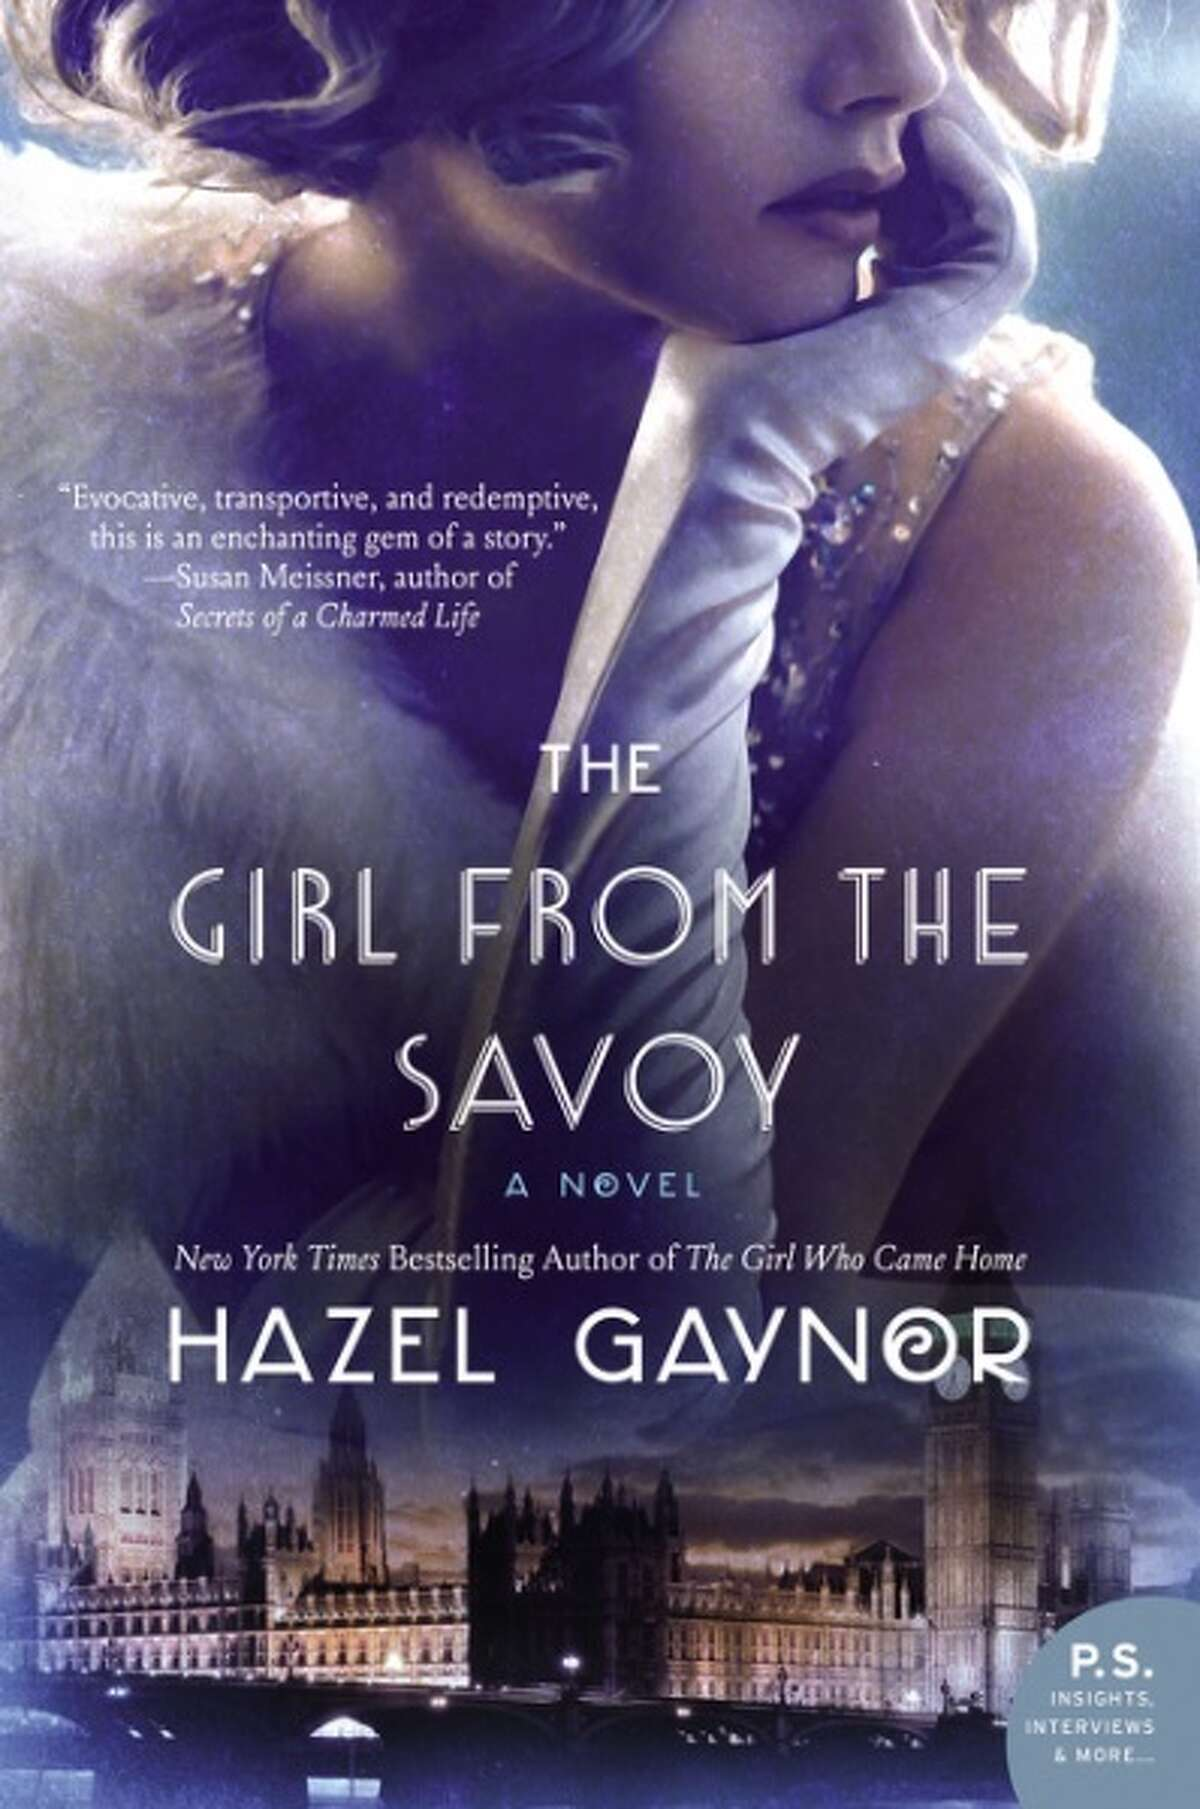 The Girl from the Savoy by Hazel Gaynor Historical novel set in the 1920s Out: Now The girl: Dolly, a chambermaid at London's Savoy hotel who gets involved in the city's glamorous theater scene.